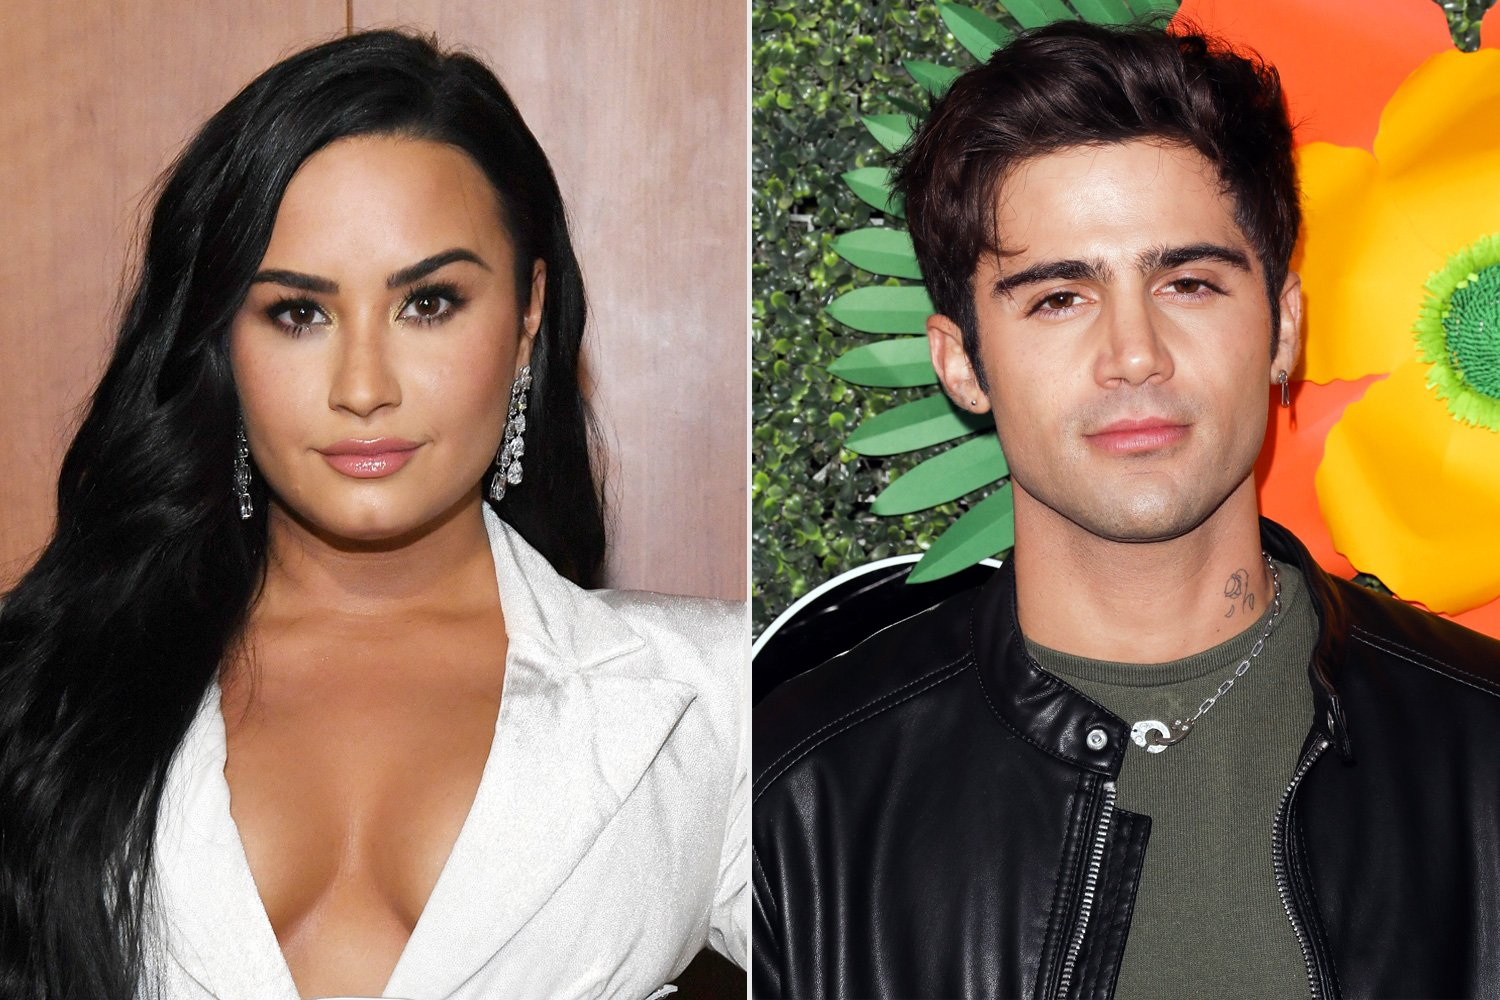 Demi Lovato And Max Ehrich Break Their Engagement After Only 2 Months!